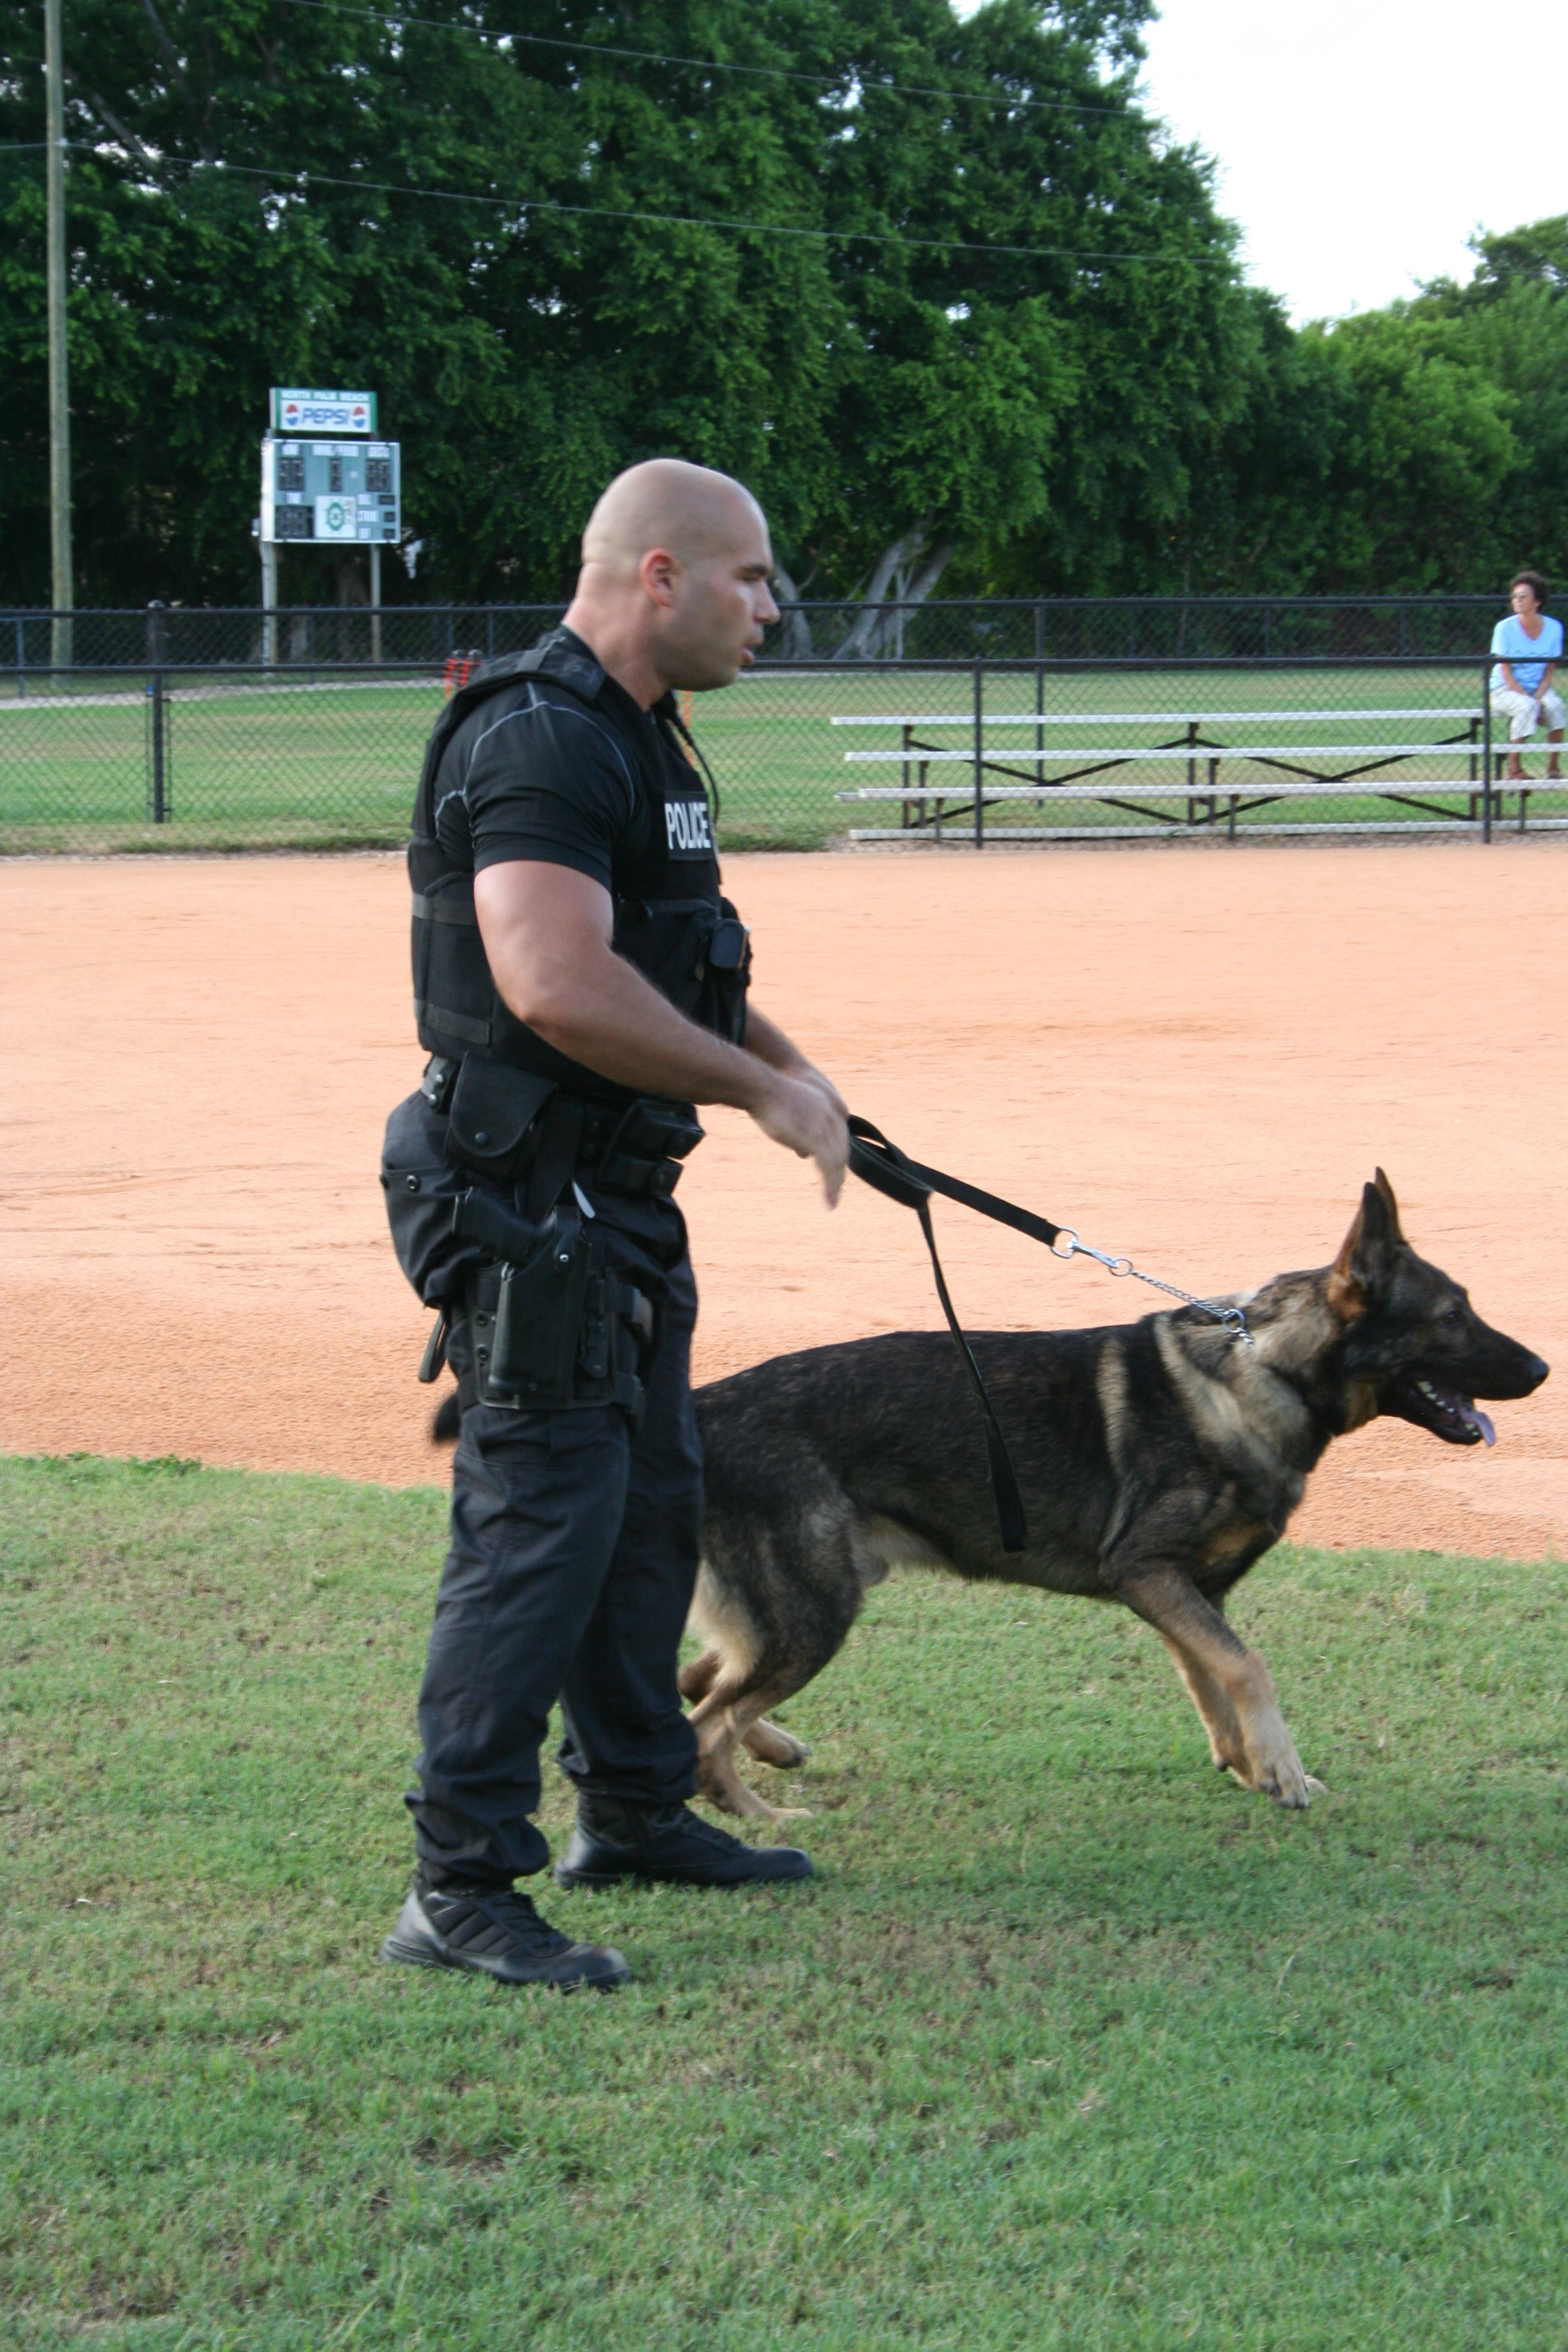 K-9 Officer Cole is training with his handler